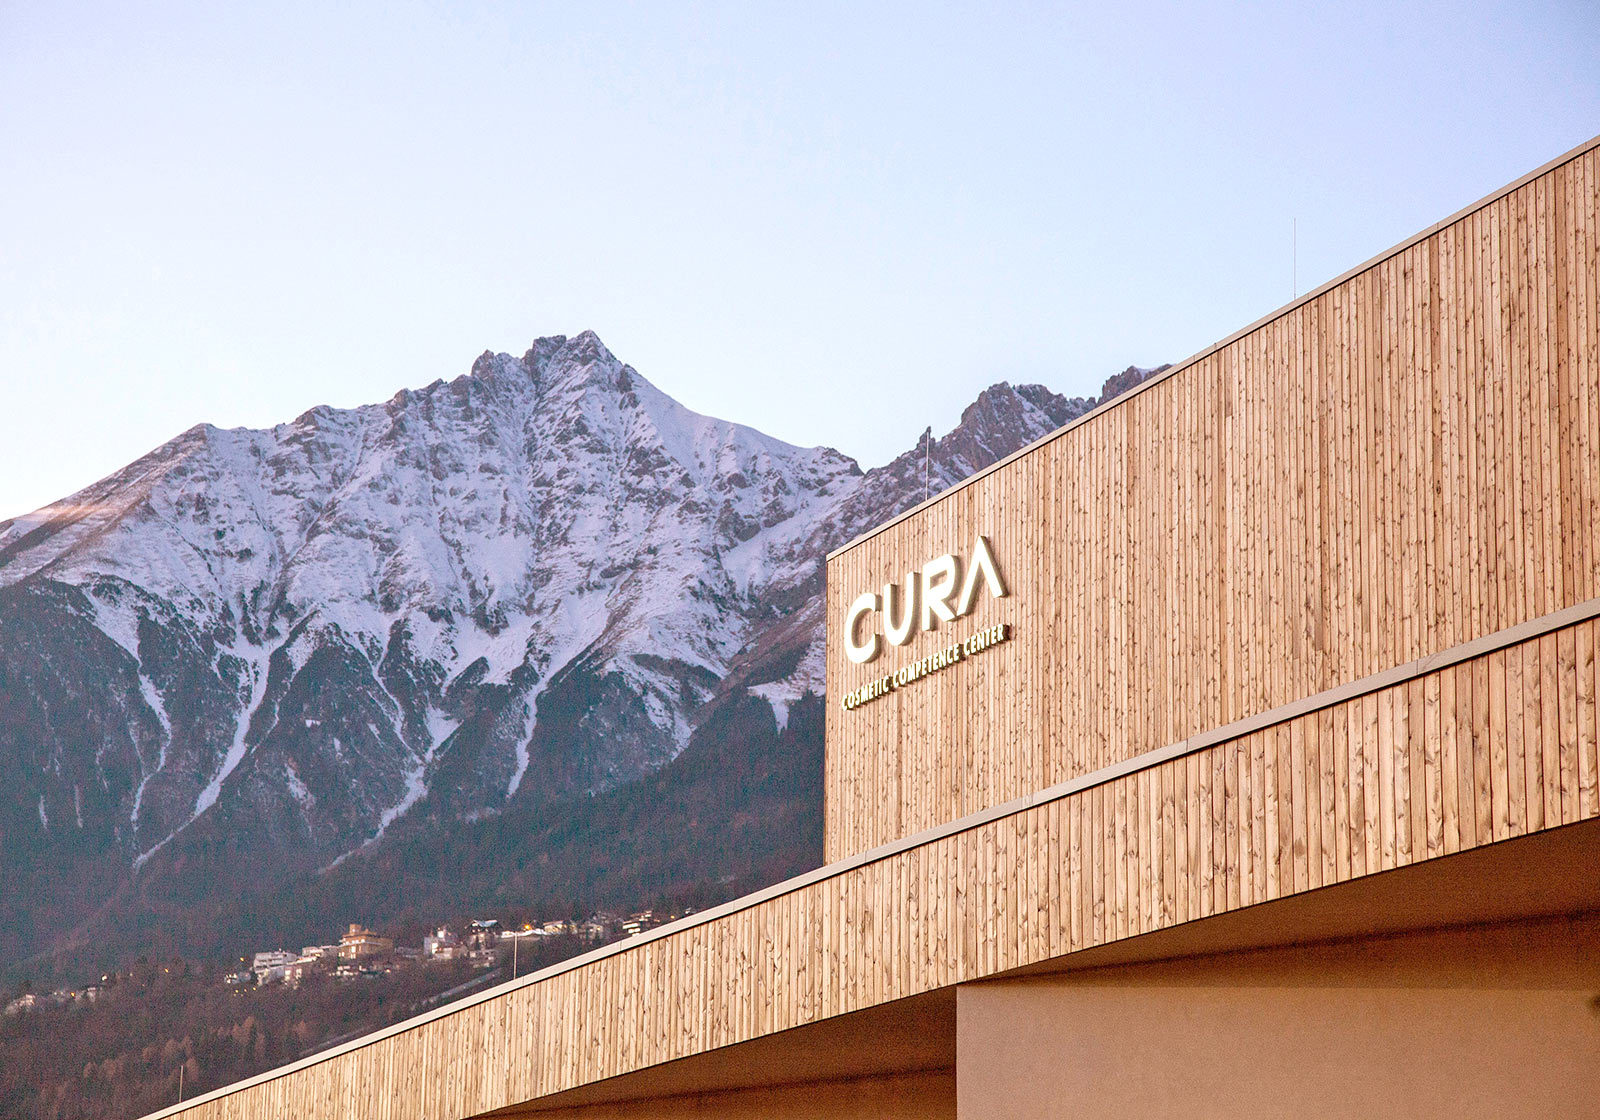 Good-looking logistic building: Cura Cosmetics. Photo: ATP/Possert